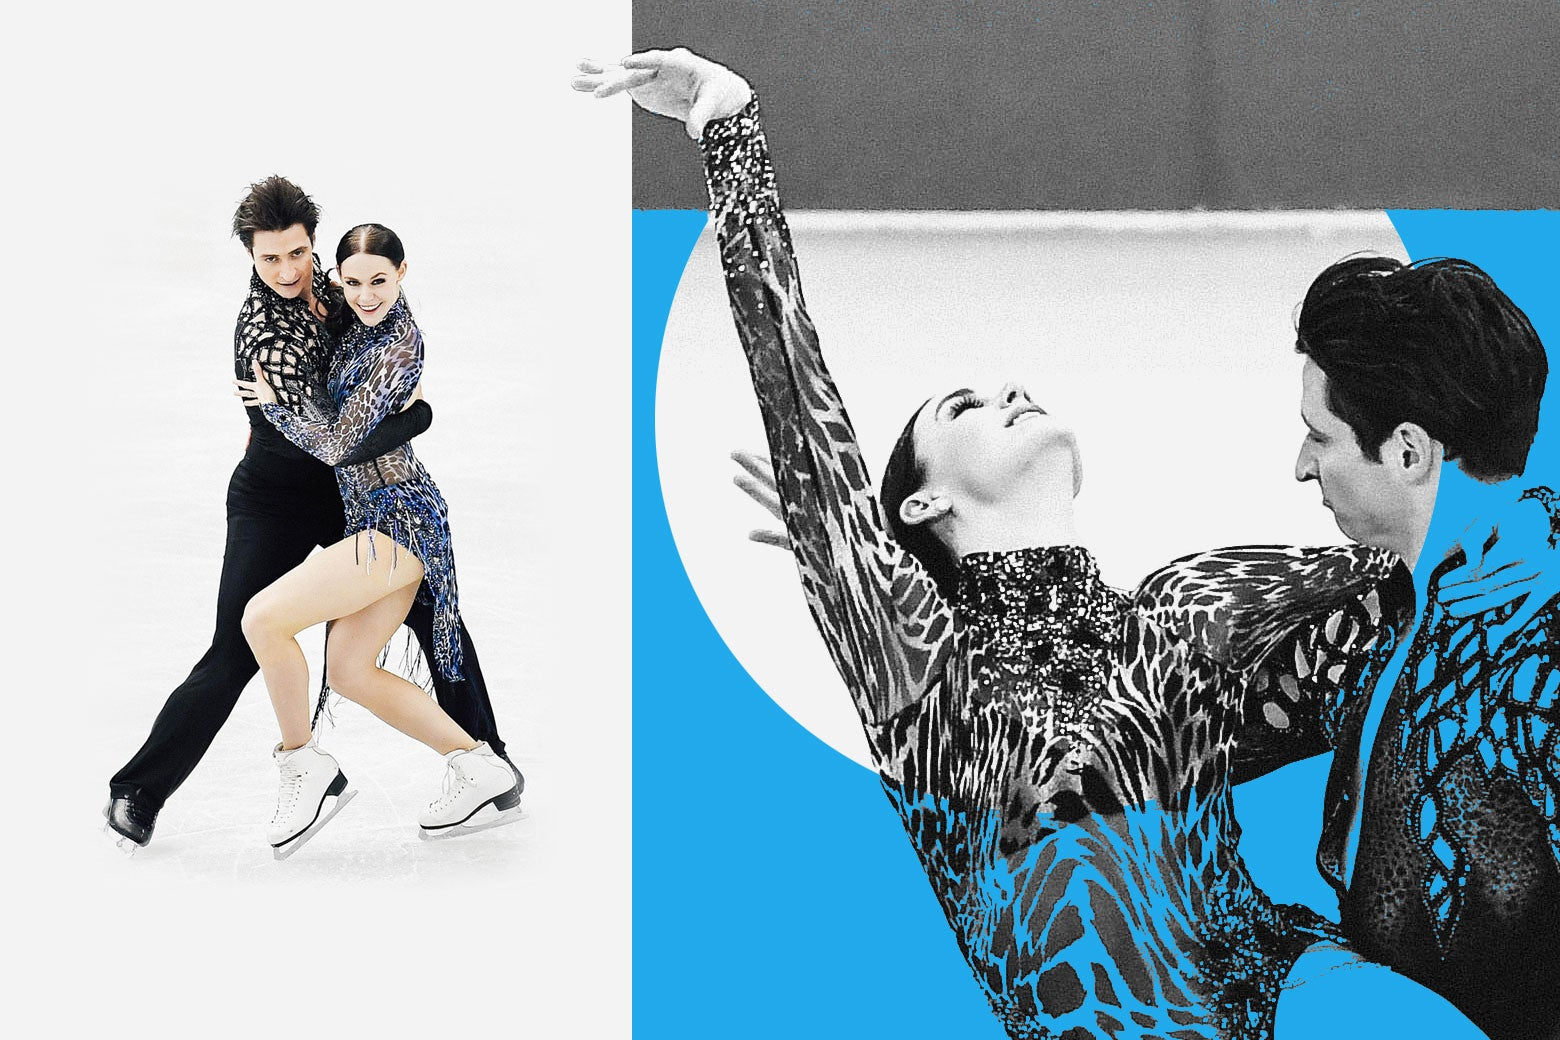 A collage of images of Tessa Virtue and Scott Moir skating.